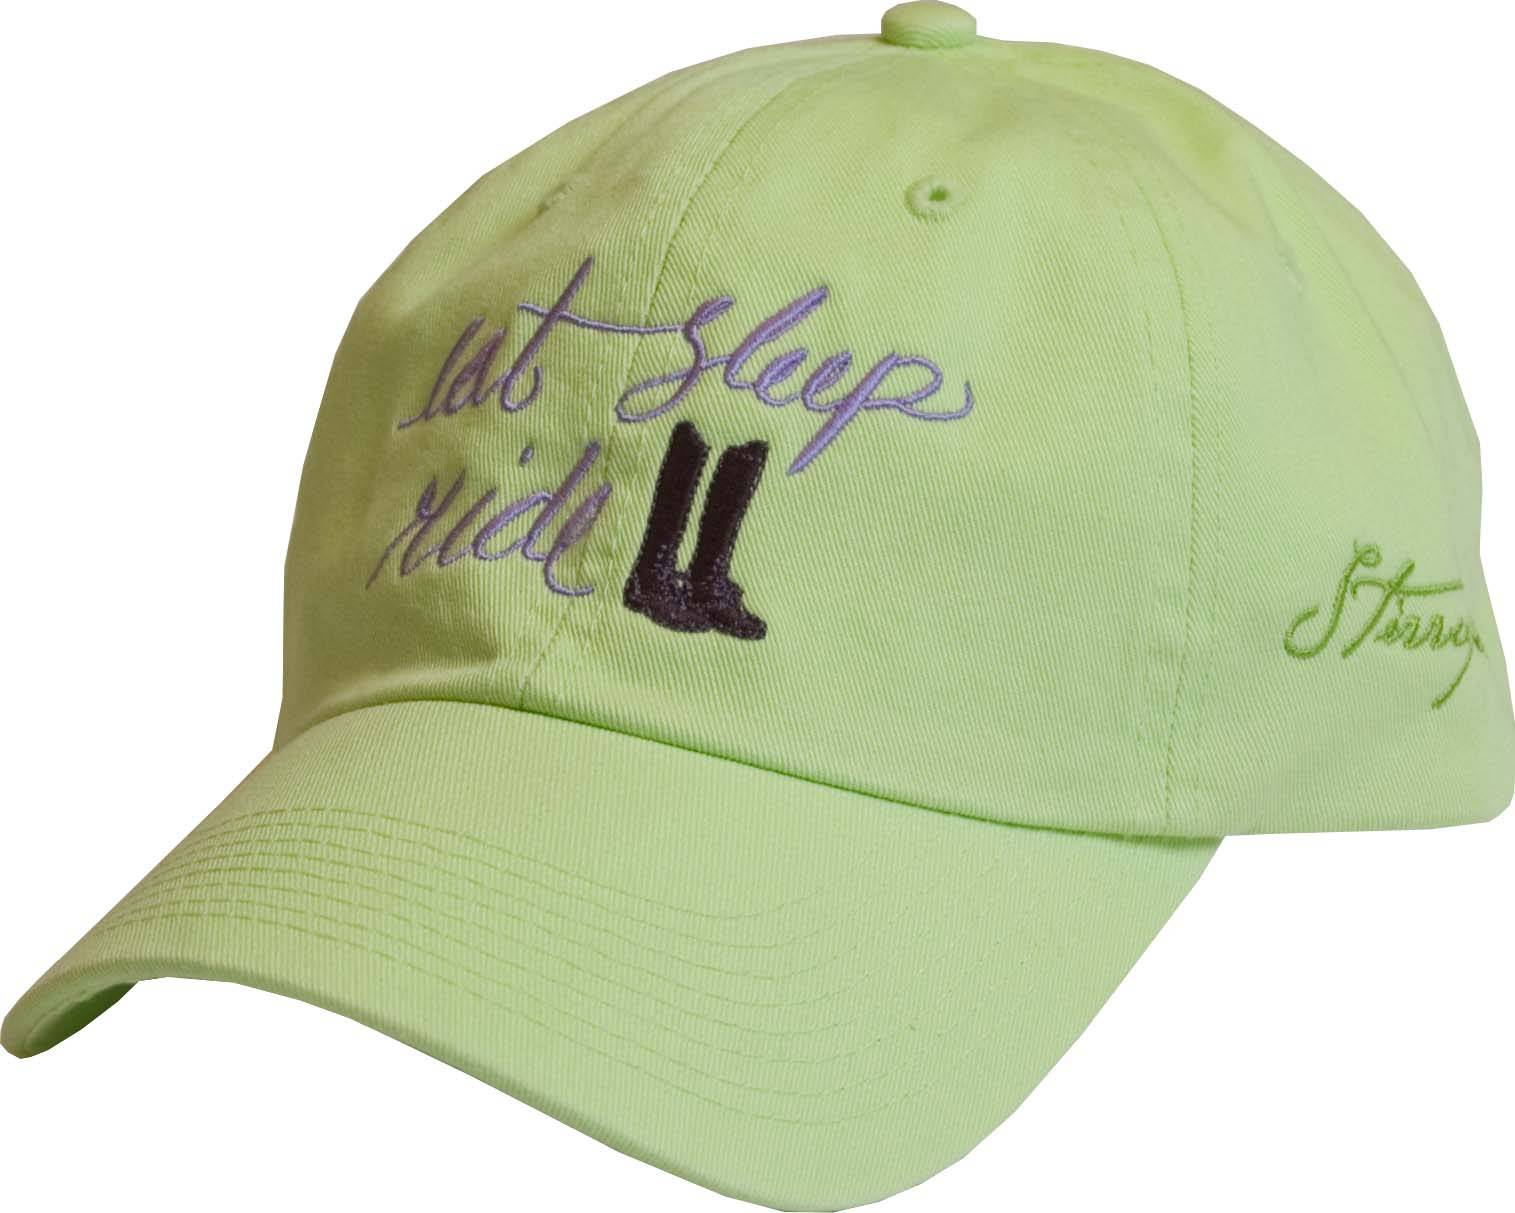 Stirrups Ladies Embroidered English Eat Sleep Ride Cotton Twill Cap